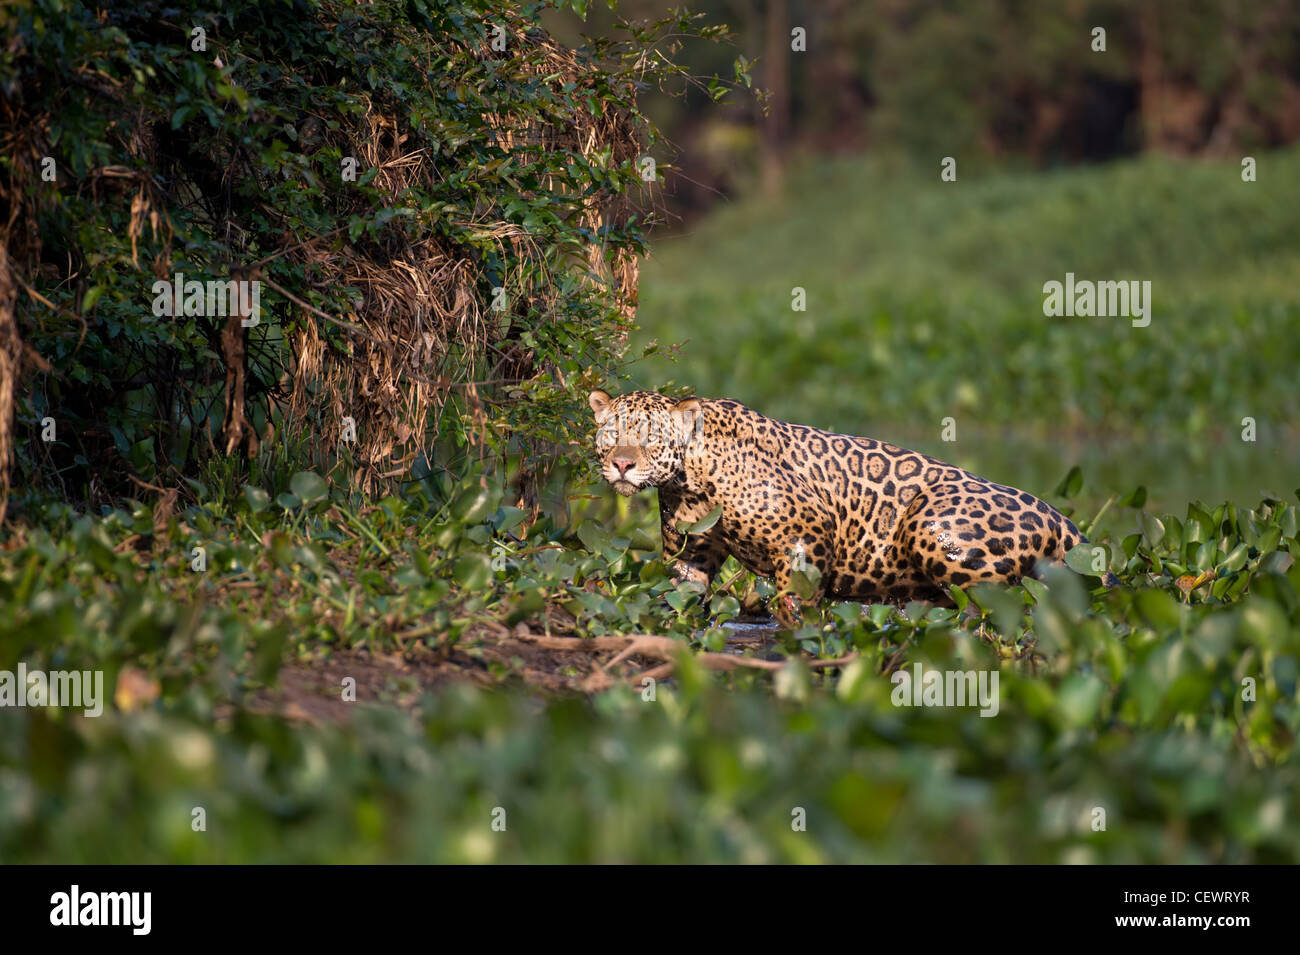 Wild male Jaguar emerging from Water Hyacinth at the edge of a tributary of Cuiaba River, Northern Pantanal, Brazil. - Stock Image